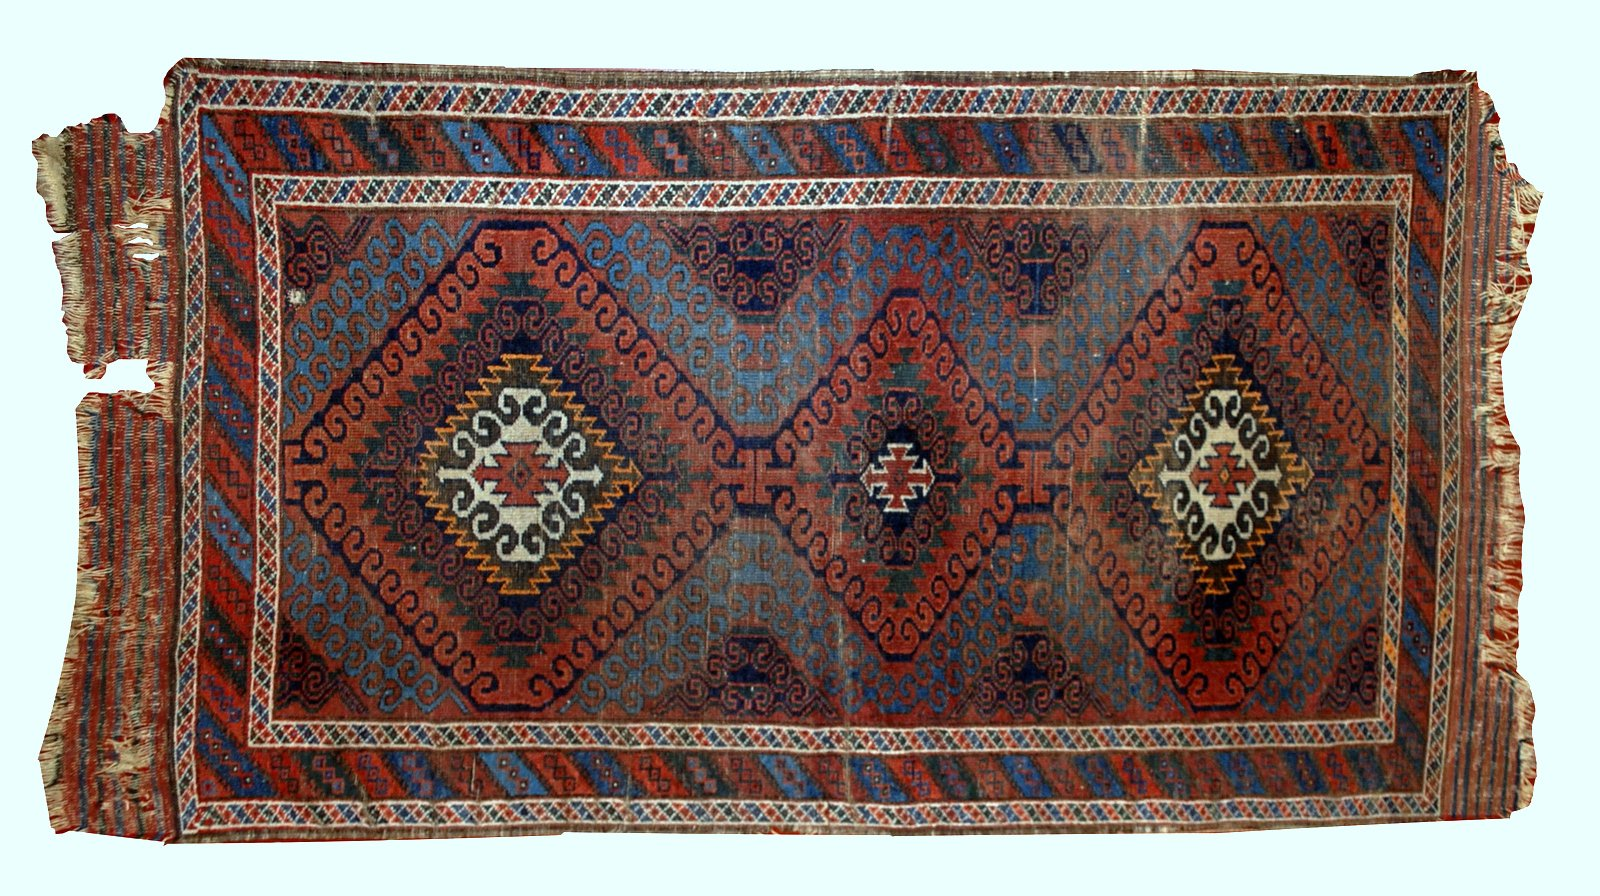 Antique Handmade Afghan Baluch Rug 1900s For Sale At Pamono